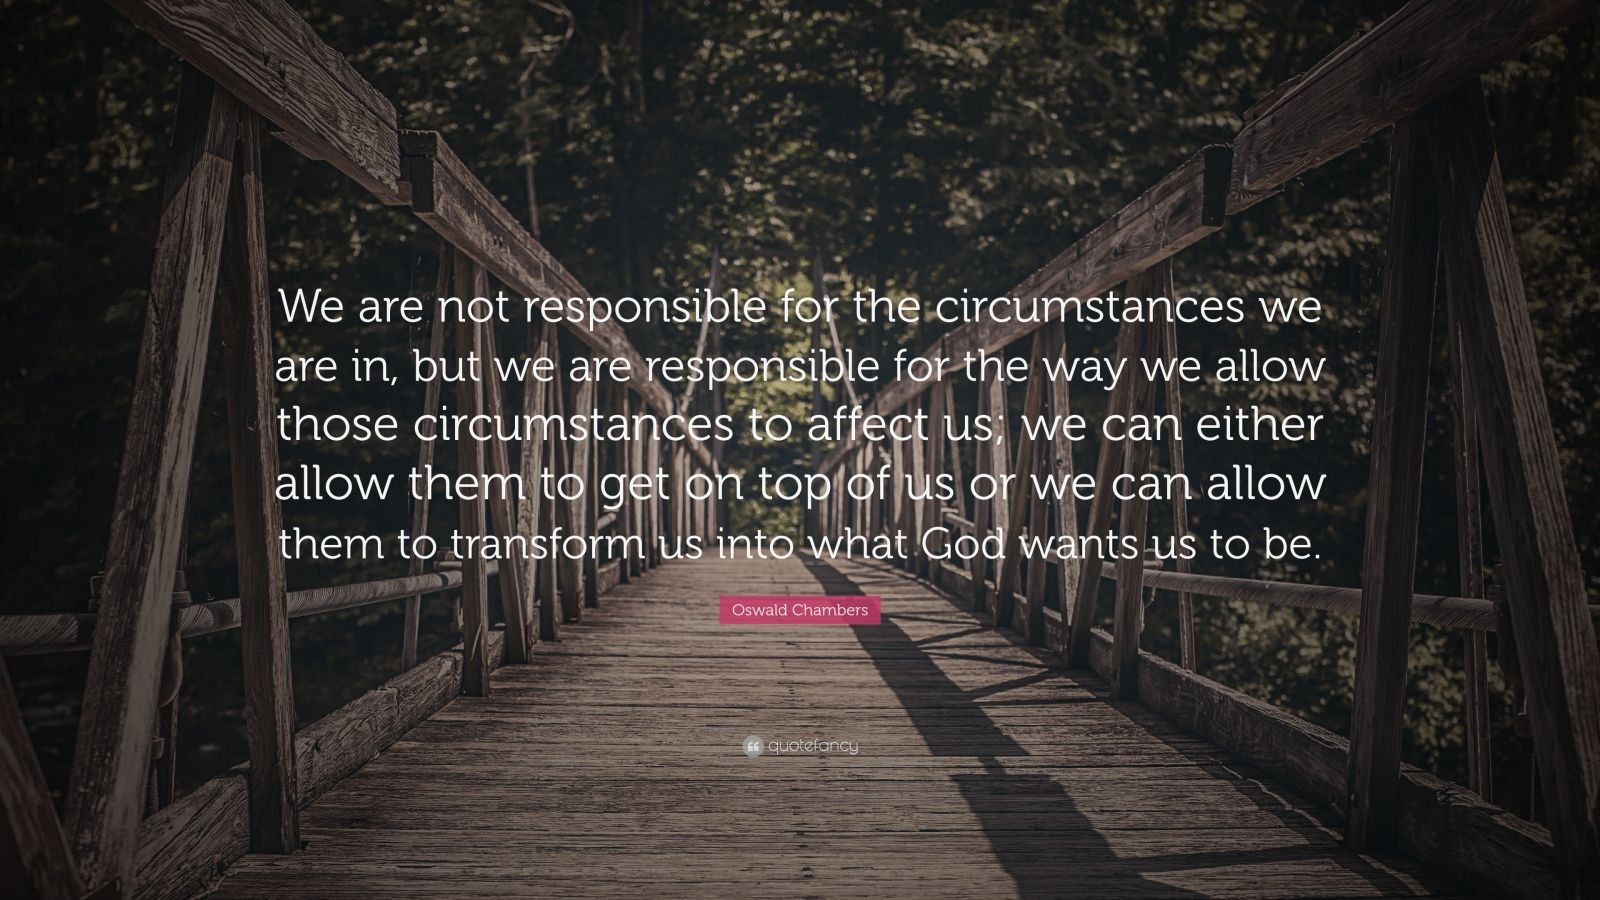 """Oswald Chambers Quote: """"We are not responsible for the circumstances we are in, but we are responsible for the way we allow those circumstances to affect us; we can either allow them to get on top of us or we can allow them to transform us into what God wants us to be."""""""